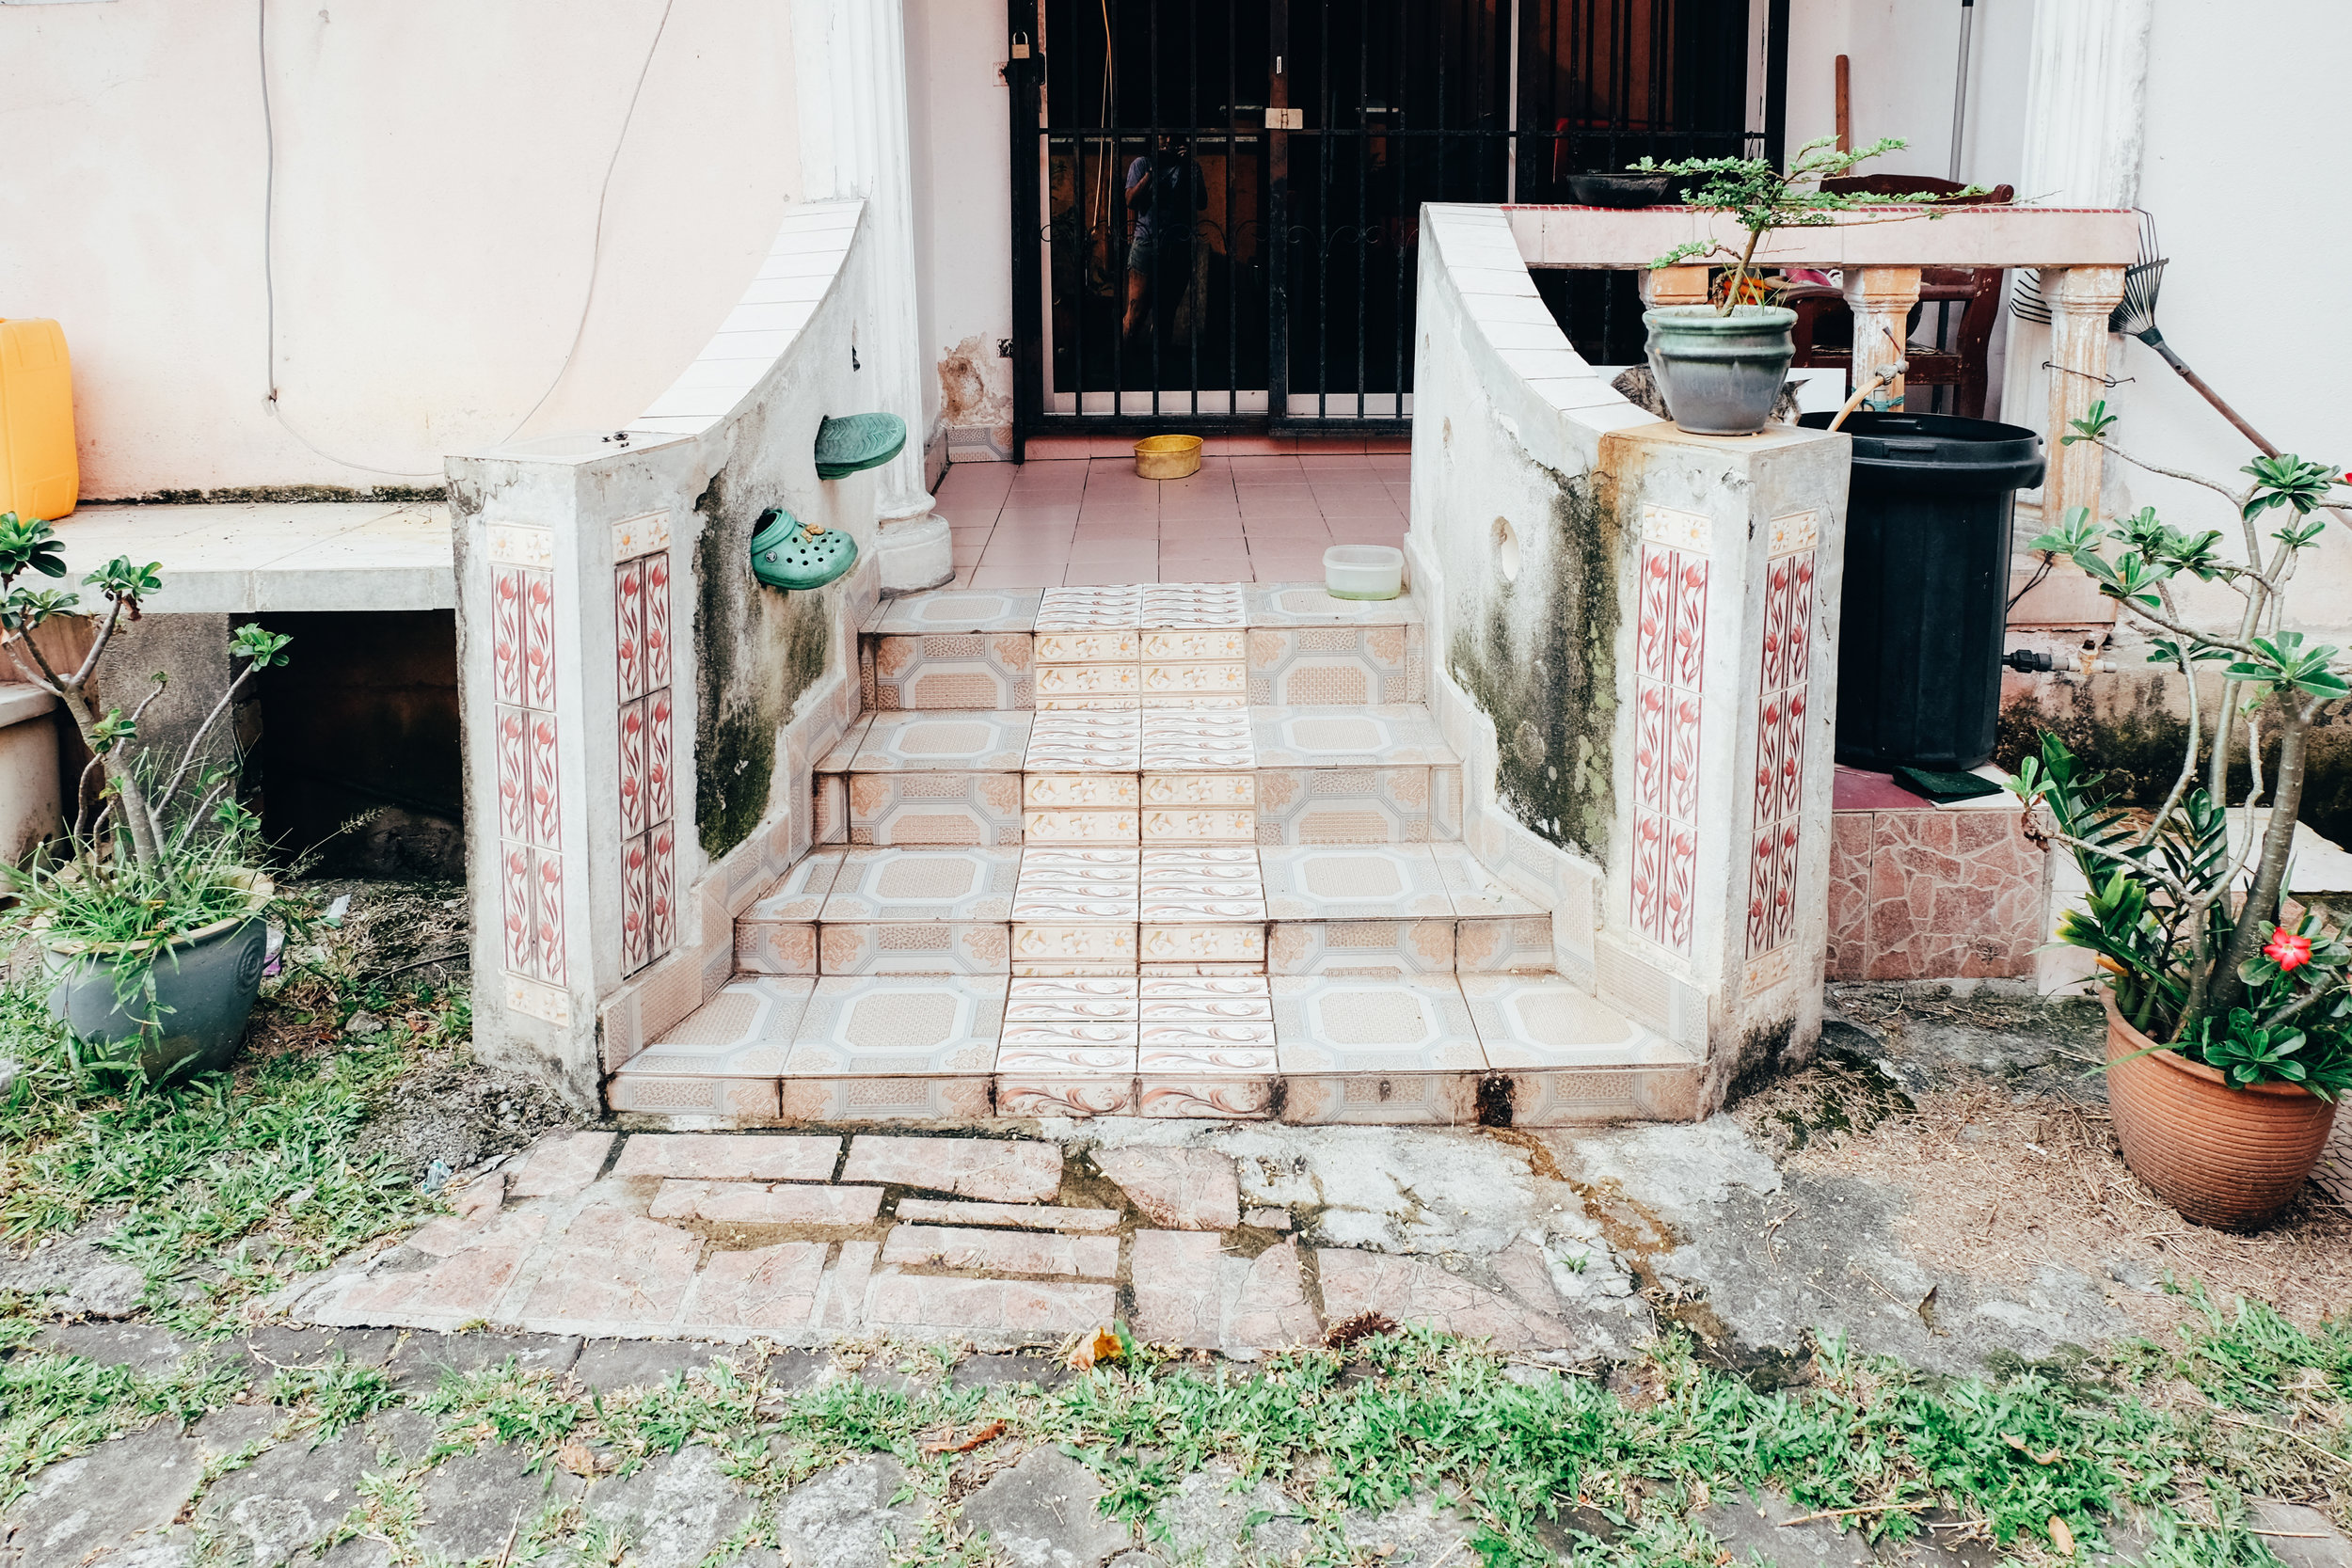 we walked along a back alley & found that some houses has such a welcoming back entrance too.